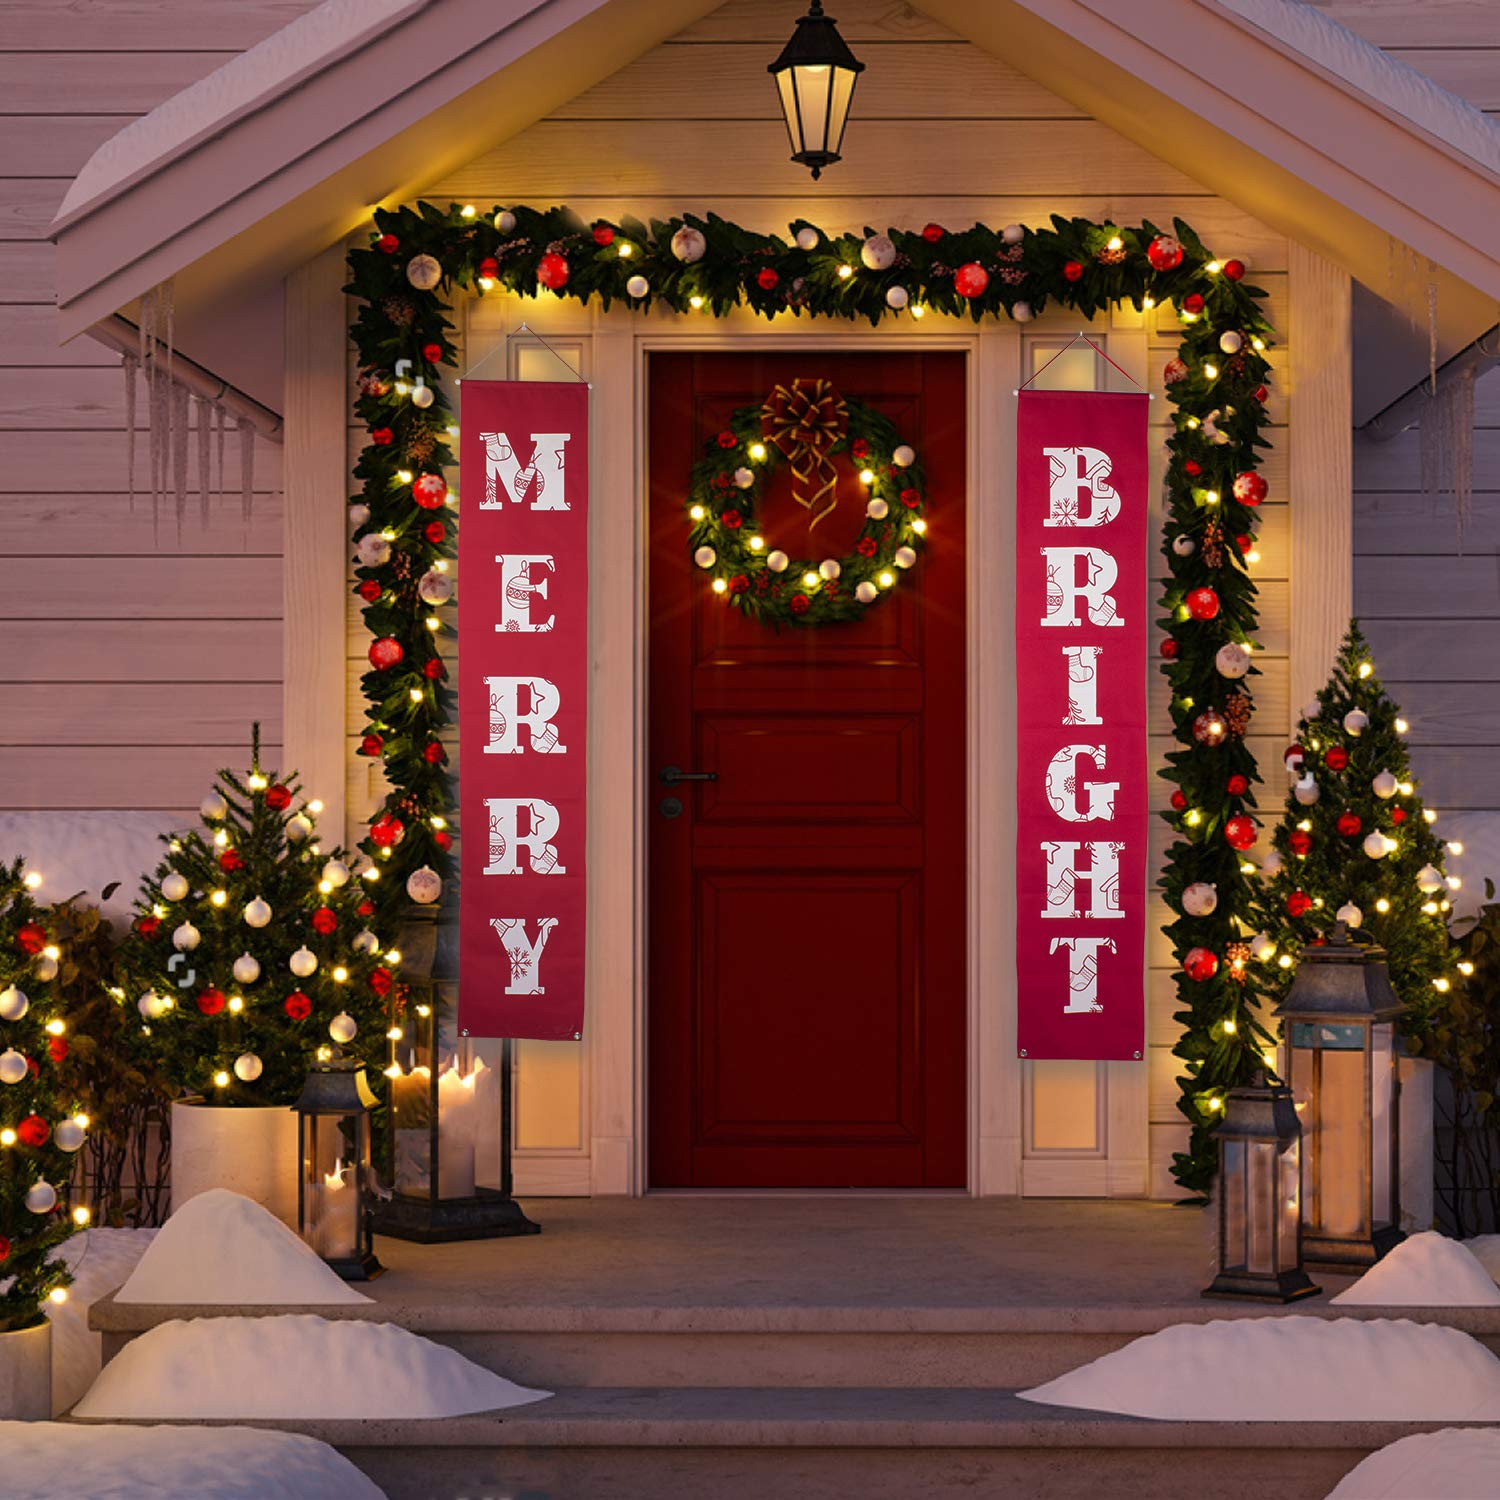 Merry Bright Christmas Banner For Christmas Decorations Outdoor Indoor Merry Bright Porch Sign Red